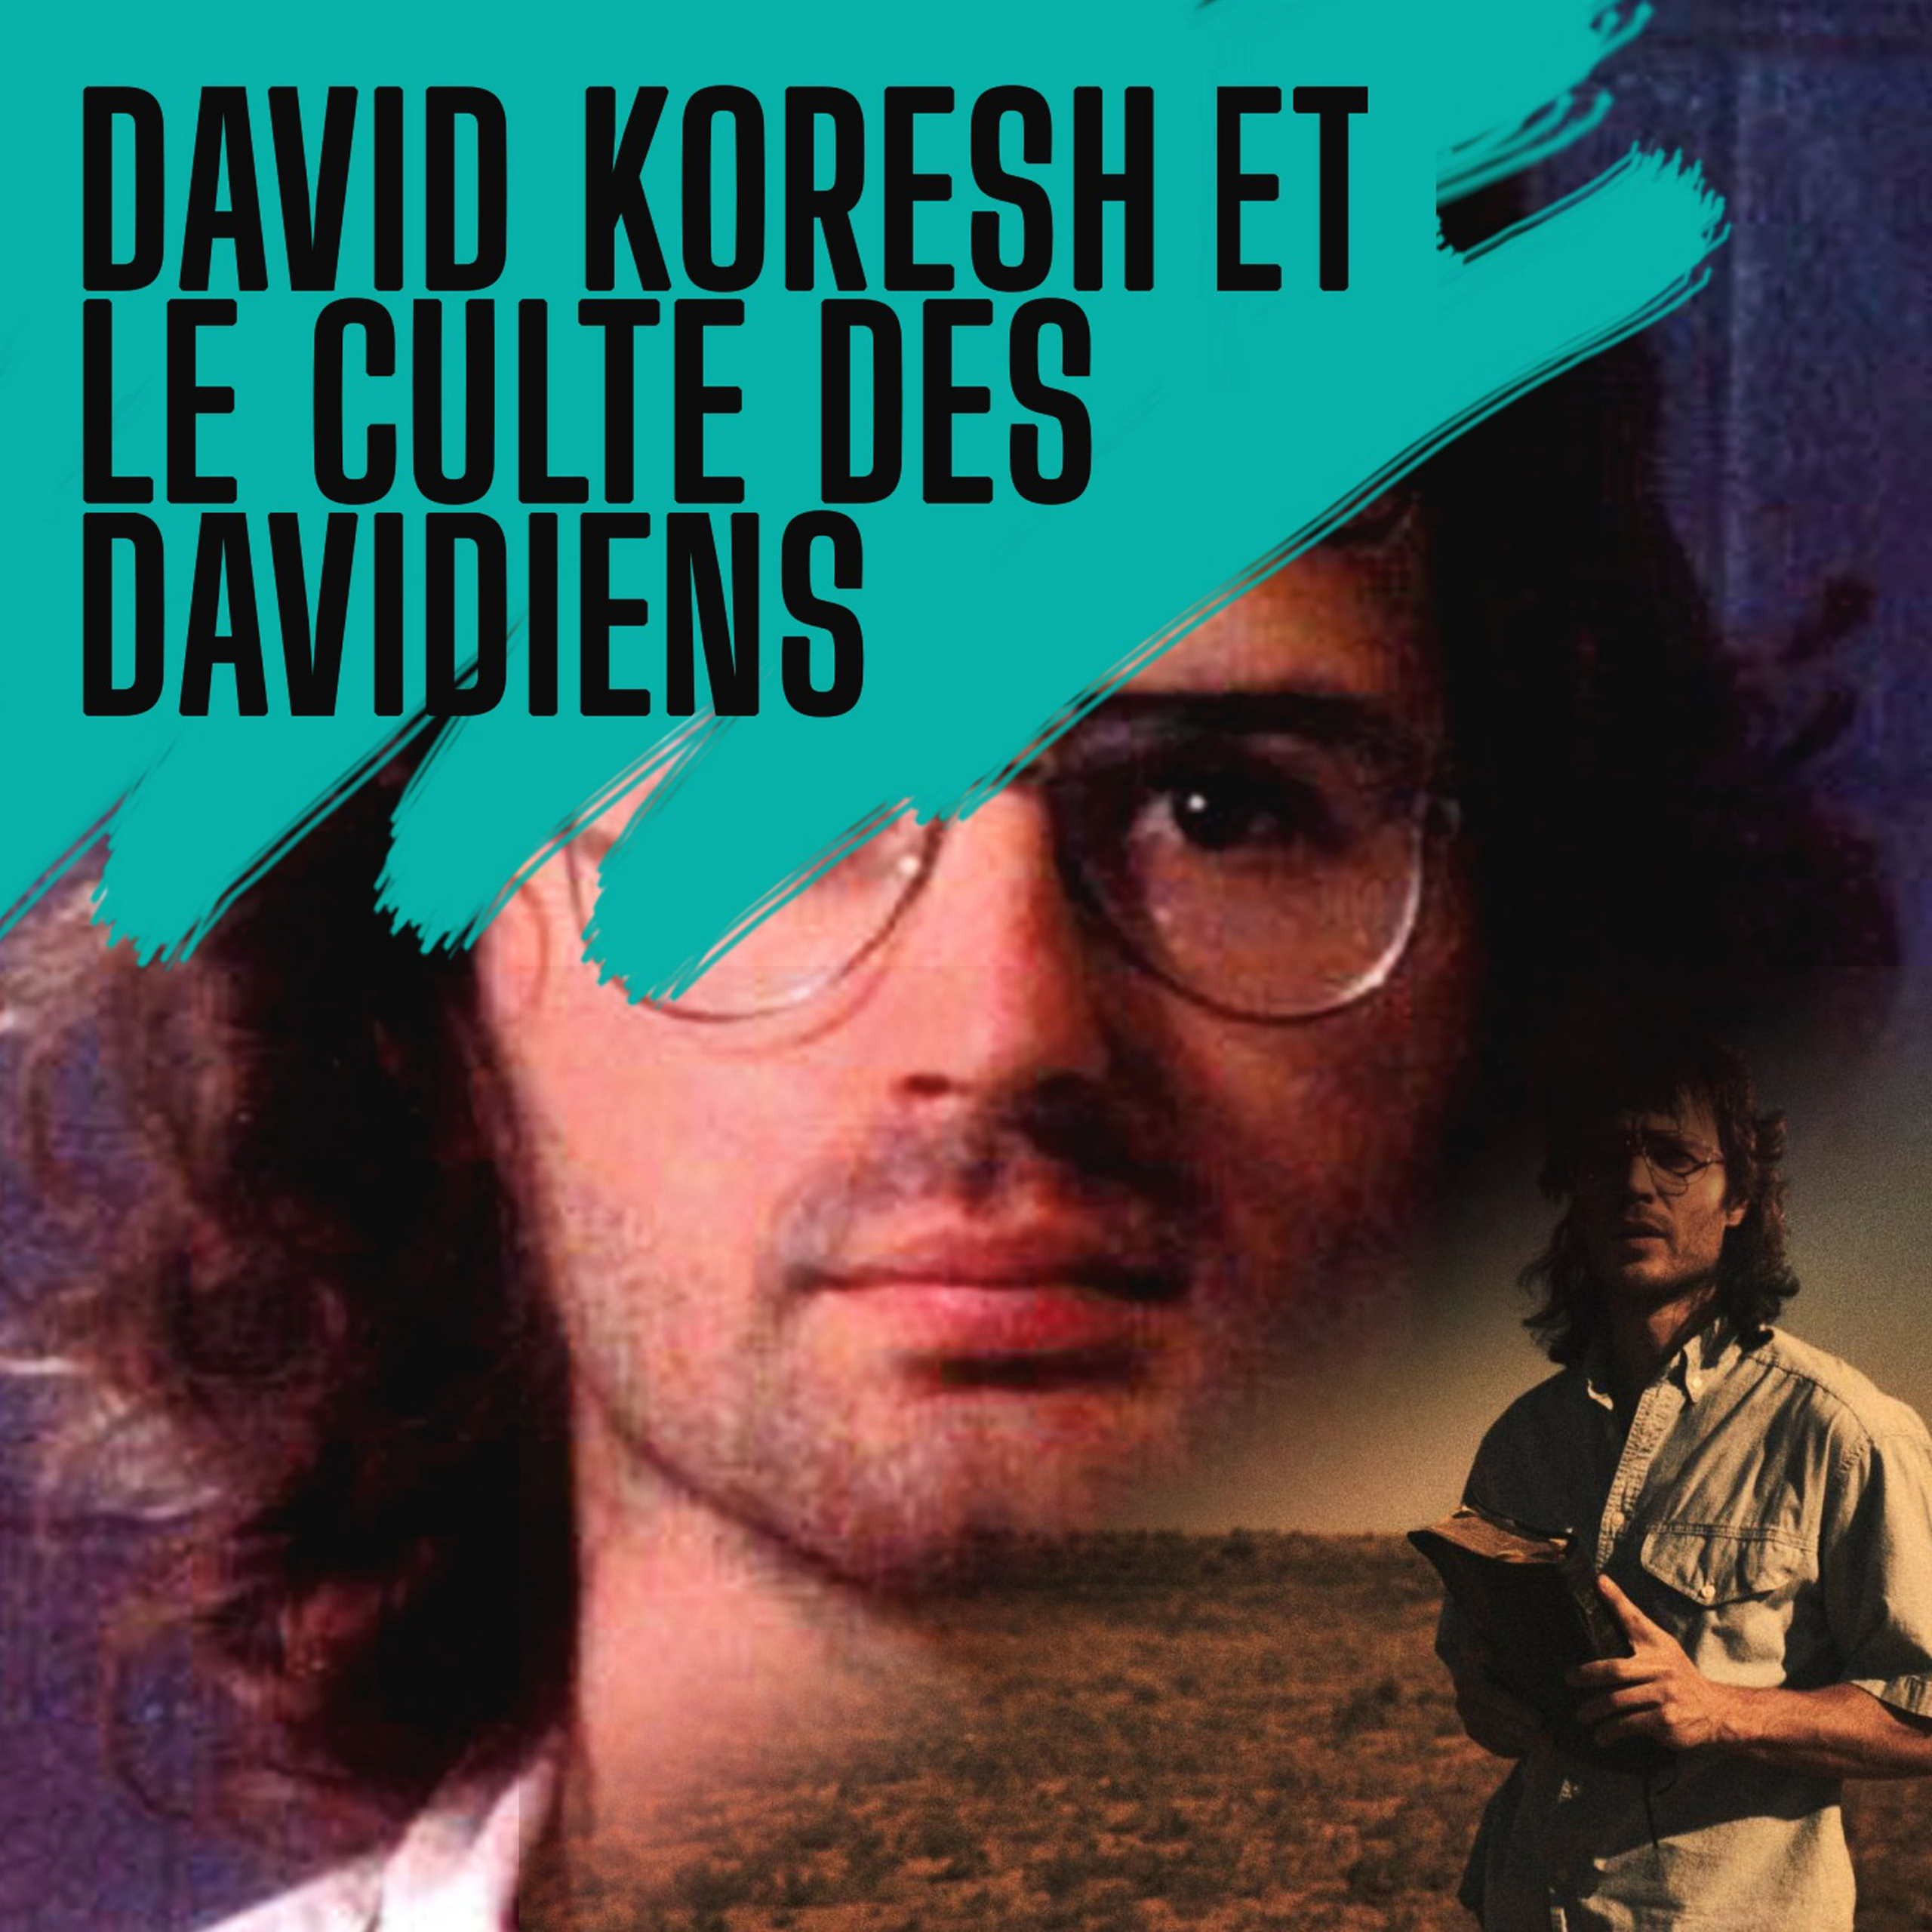 David Koresh et le culte des davidiens